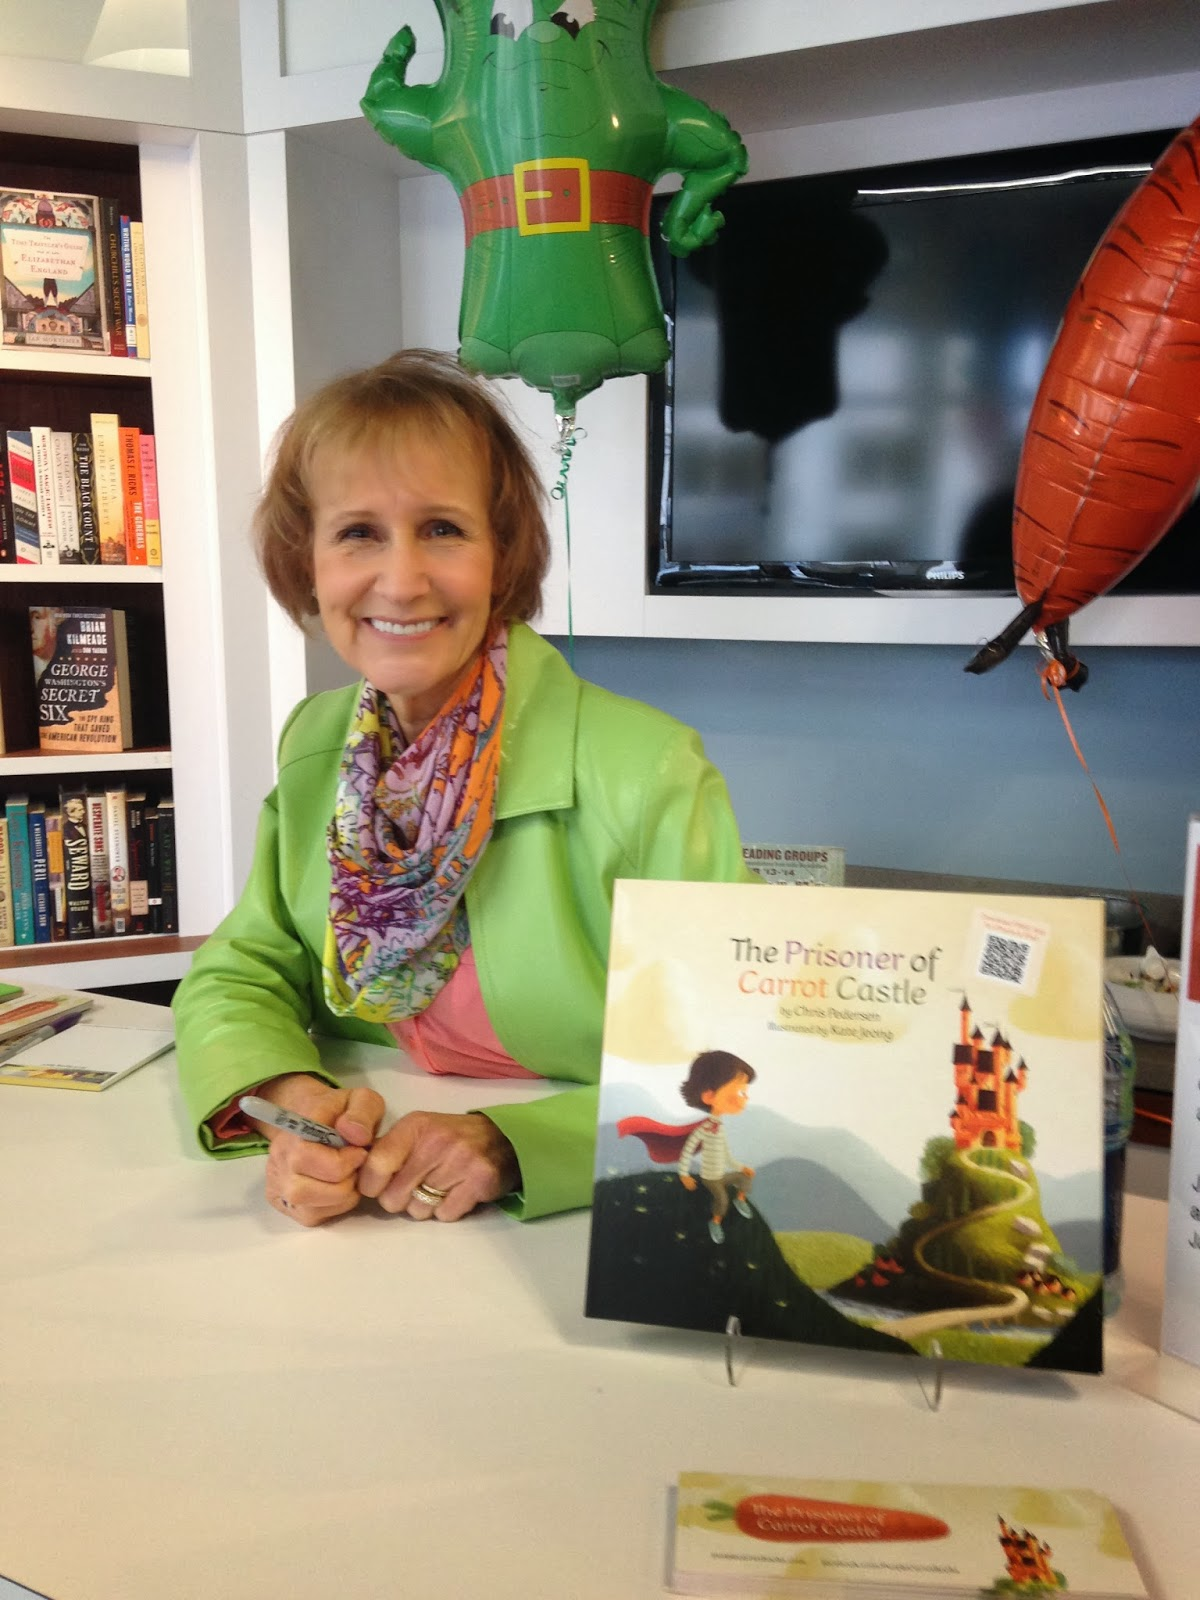 Book signing for The Prisoner of Carrot Castle